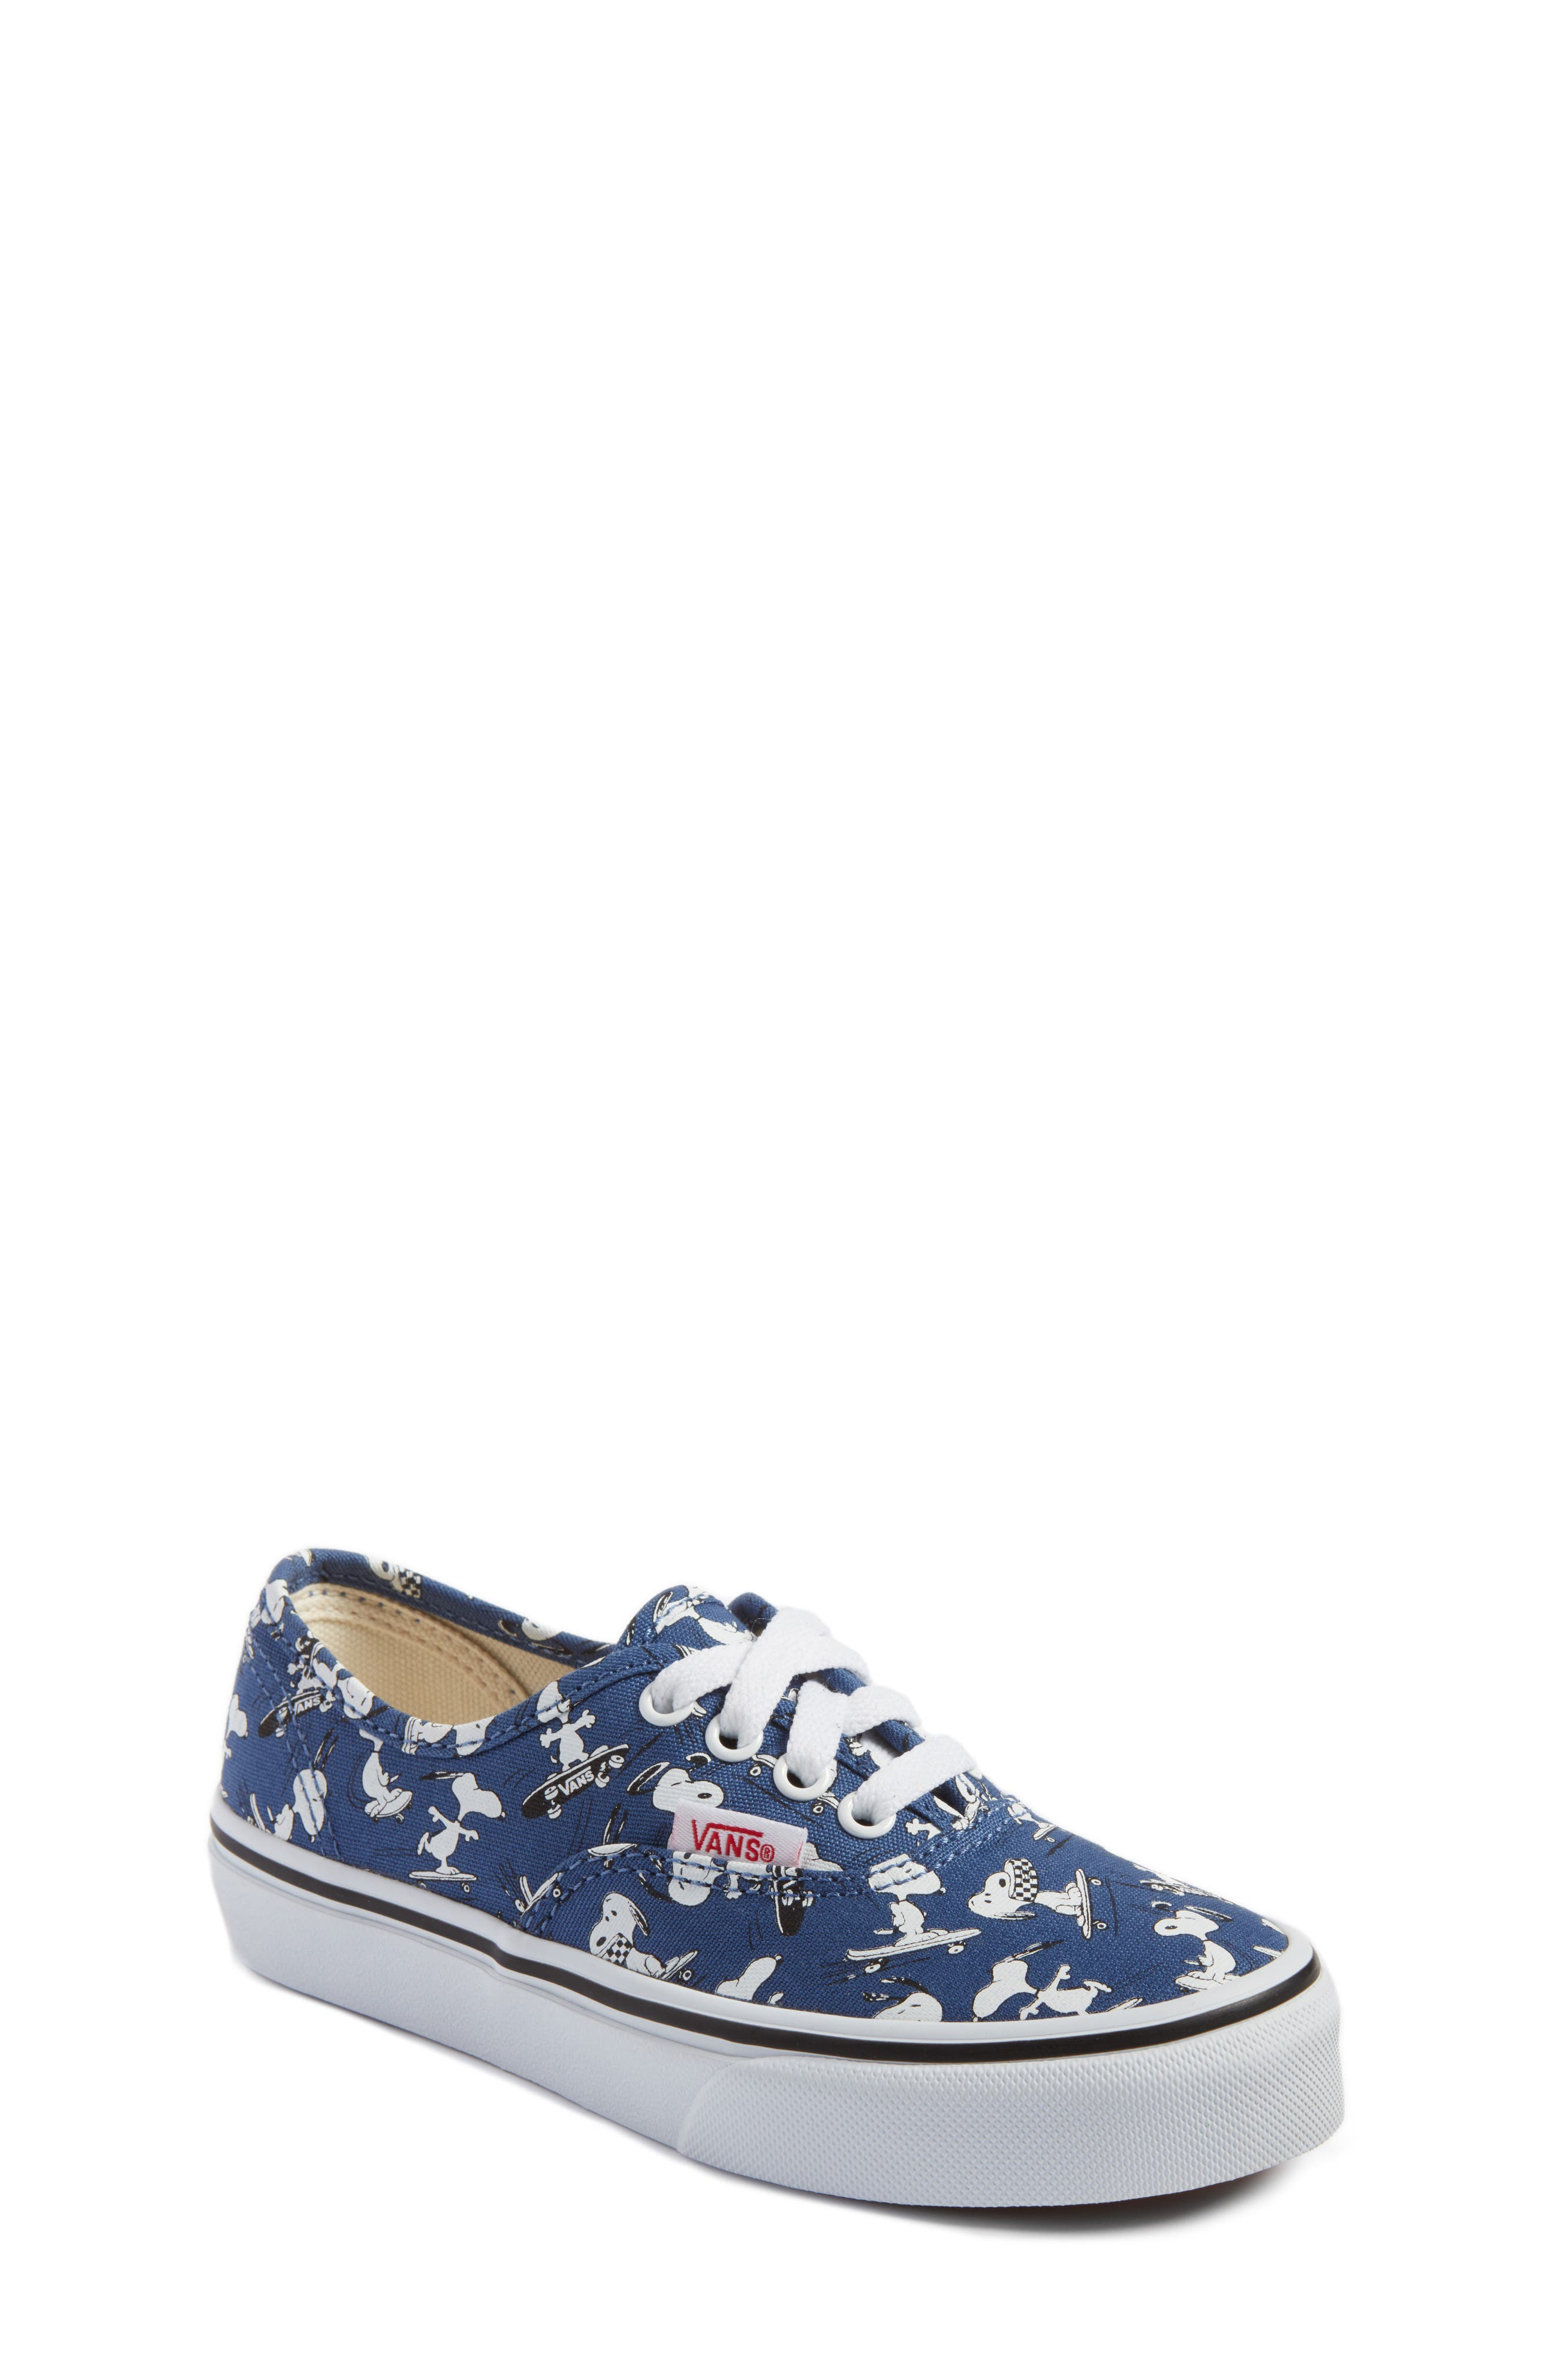 x Peanuts Authentic Sneaker,                         Main,                         color, 400